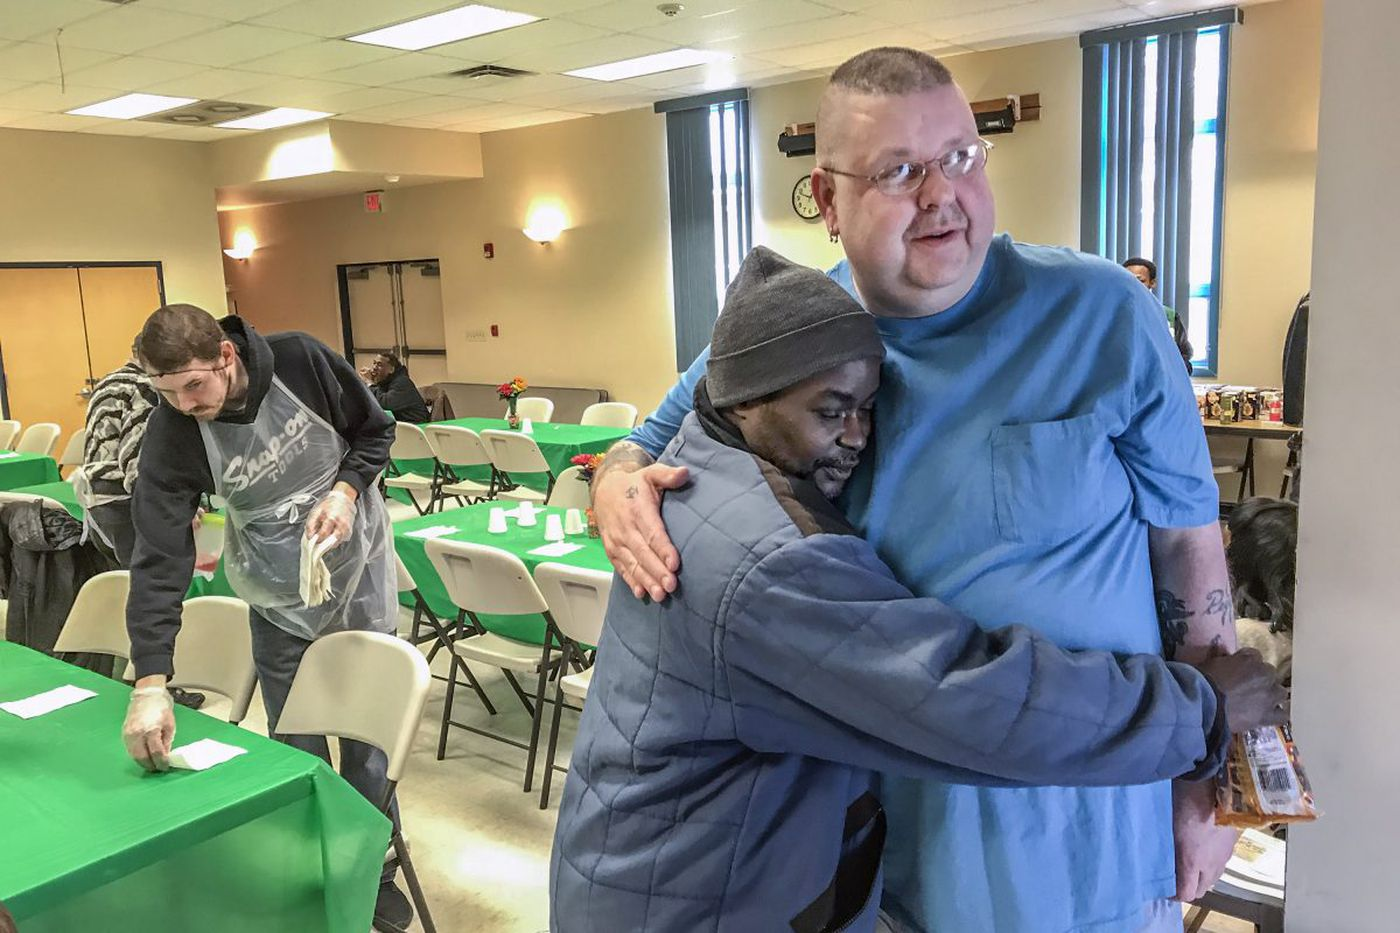 Former Jersey Klansman found forgiveness and an unlikely friend in a black church